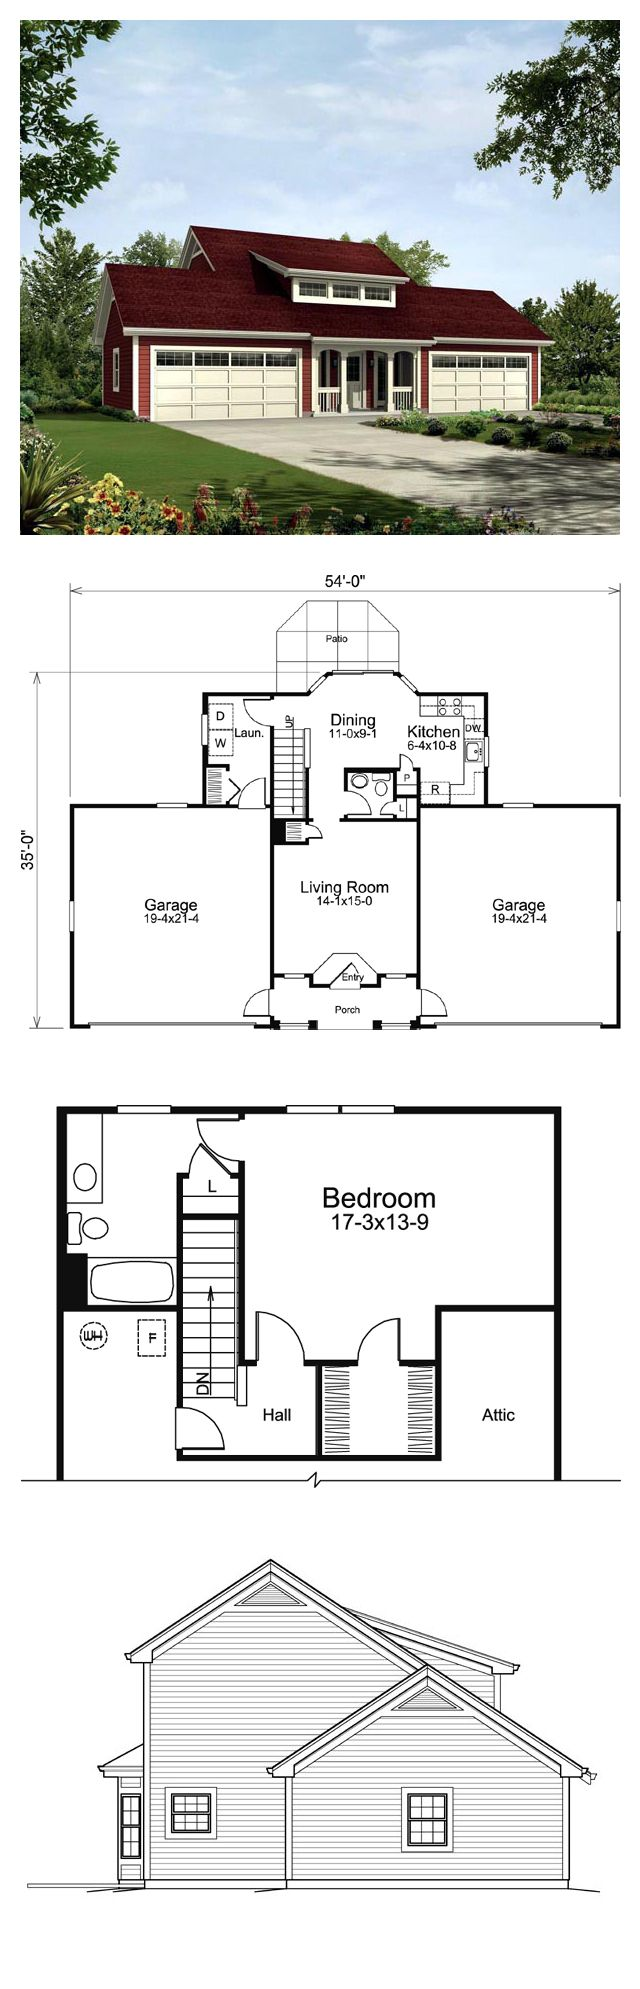 Country Style House Plan 95832 With 1 Bed 2 Bath 4 Car Garage Country Style House Plans House Plans Best House Plans